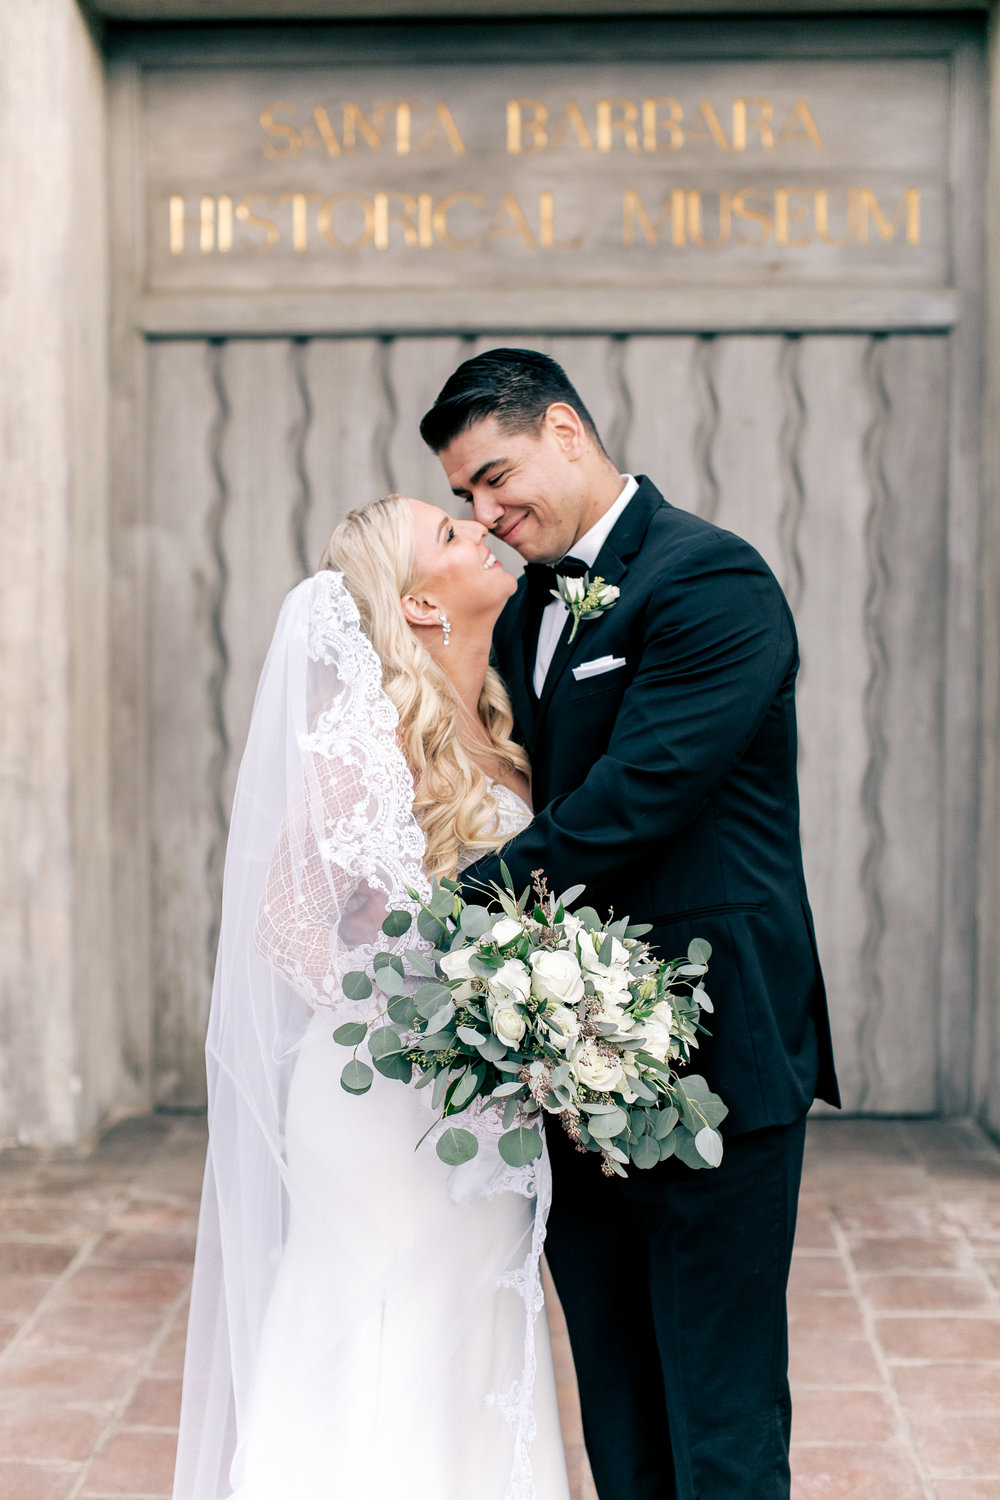 6 hours of consecutive wedding  coverage *2 Photographers (myself + a talented 2nd) *500+ hand-edited images *Photo Timeline Planning *Vendor Recommendations *Location Scouting *Online Gallery *Printing Right